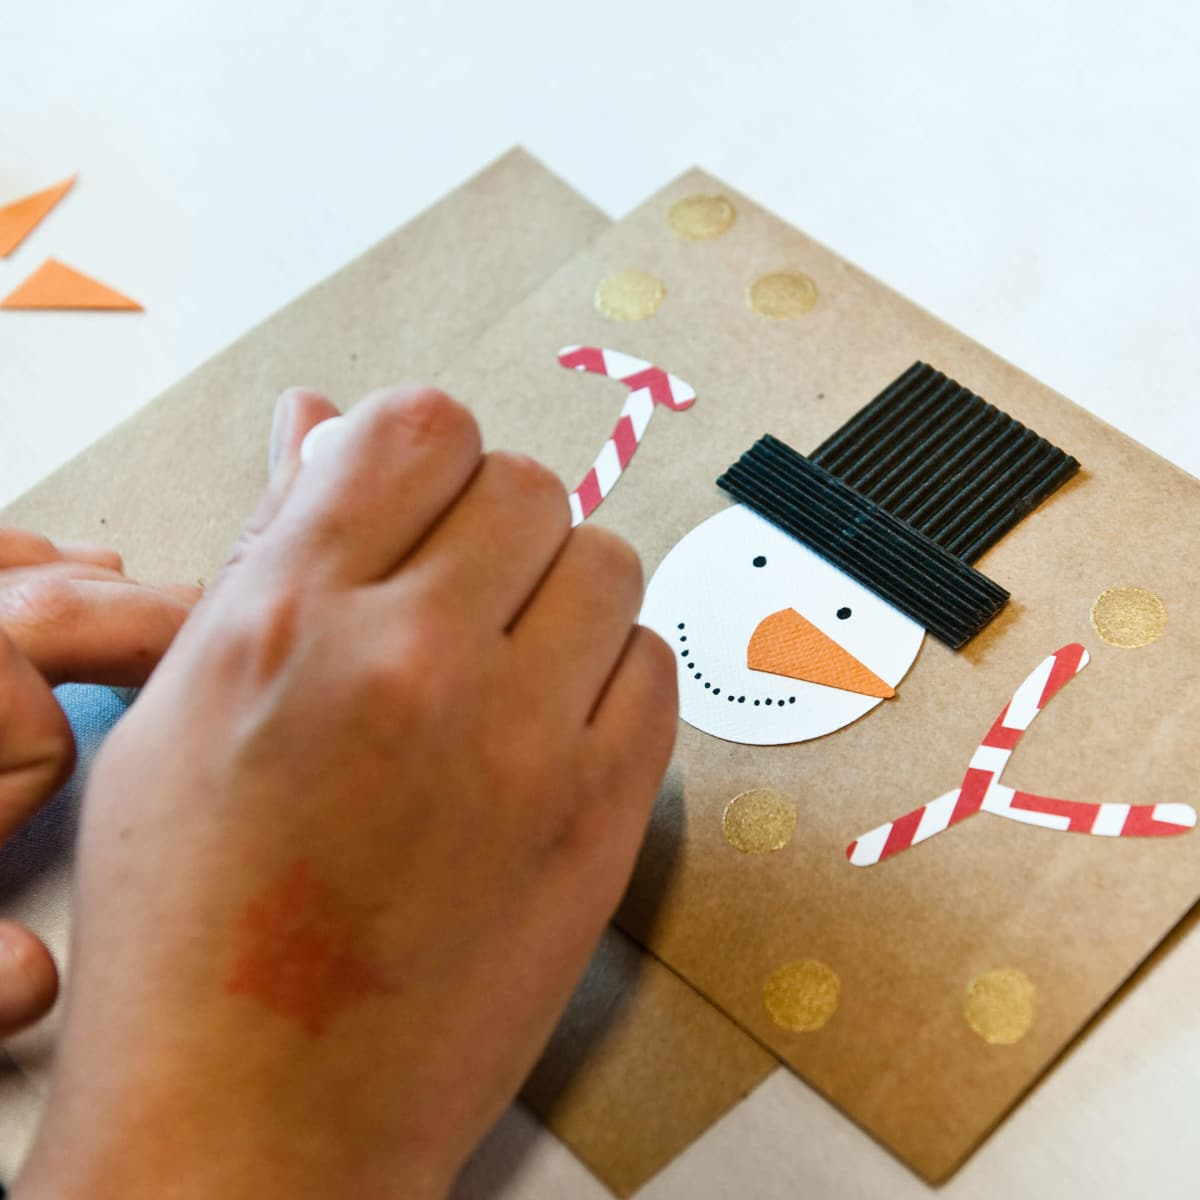 Craft station at CultureMap Holiday Pop-up Shop 2014